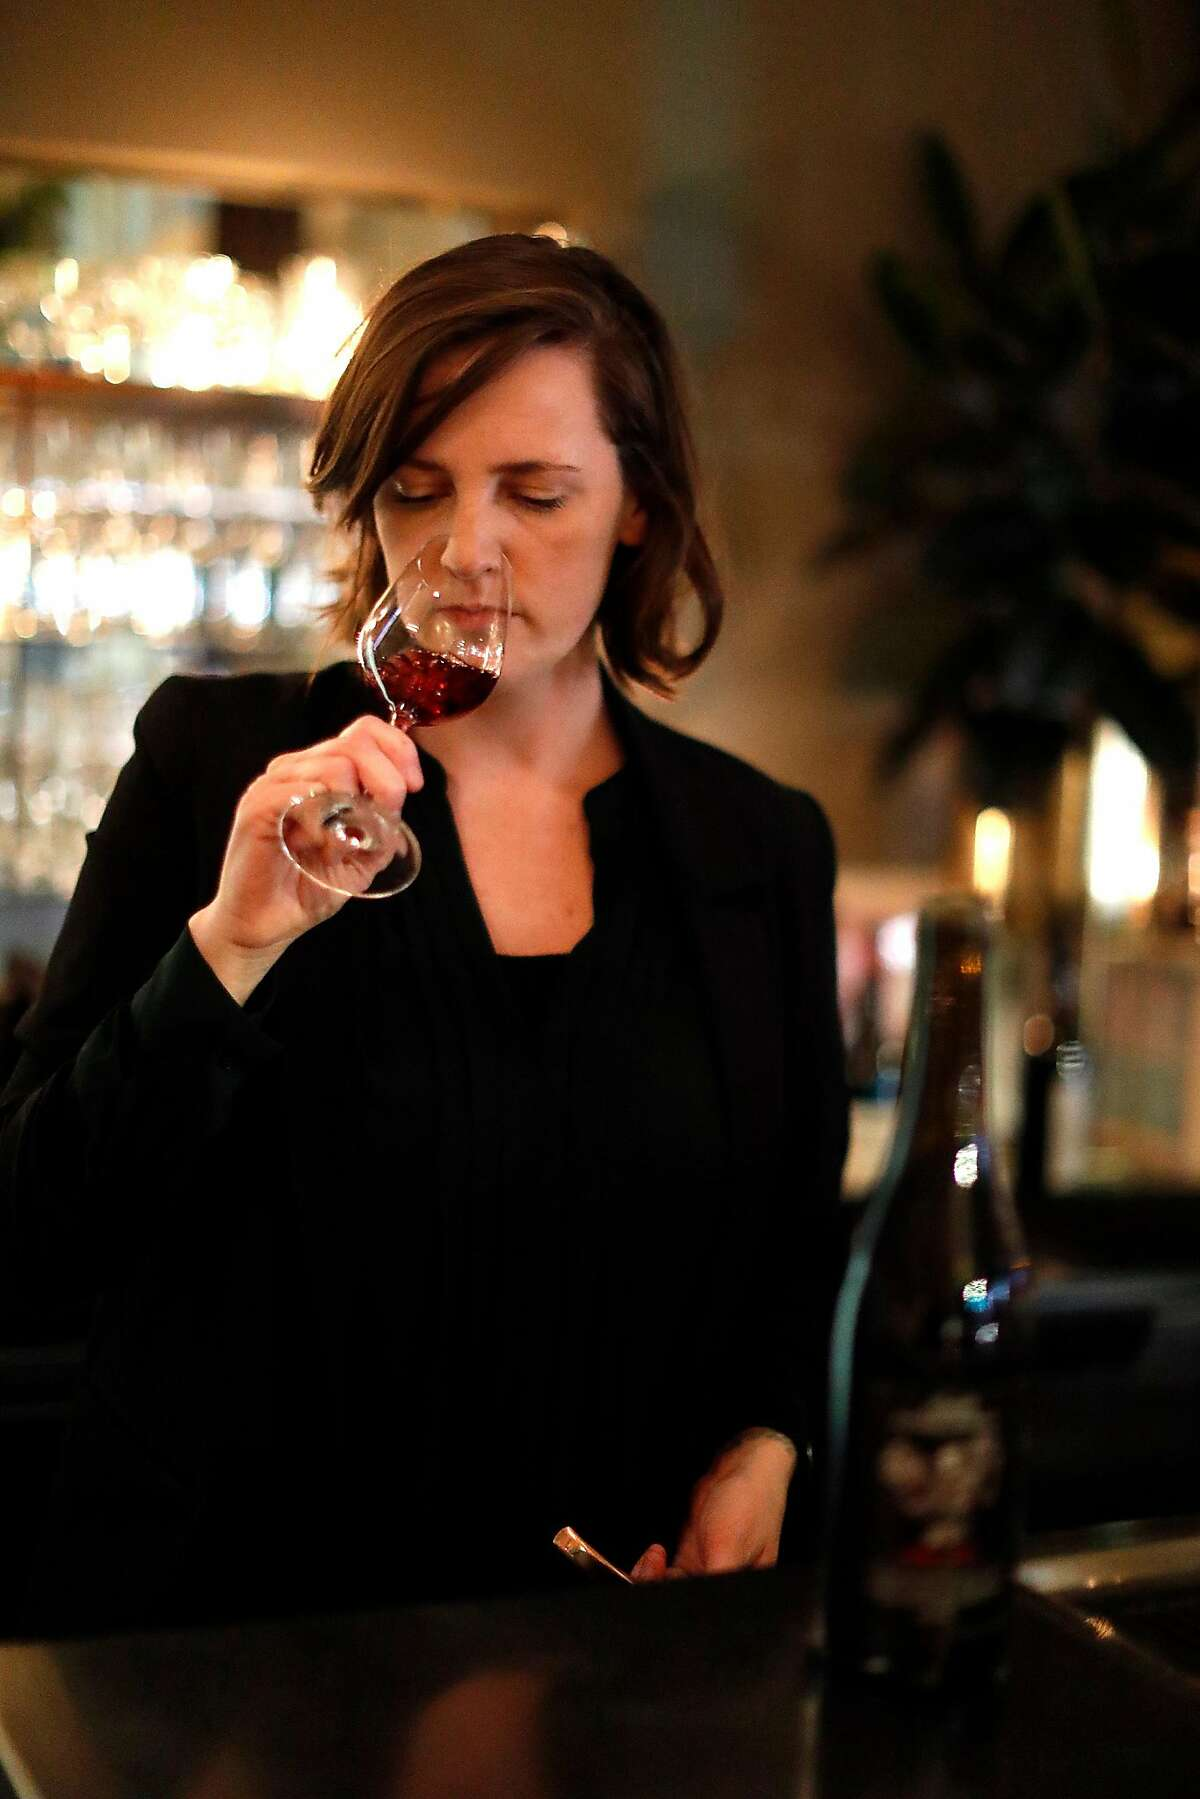 Louisa Smith, Lord Stanley wine director, checks the aroma of a glass of wine at the restaurant in San Francisco, Calif., on Wednesday, February 20, 2019.